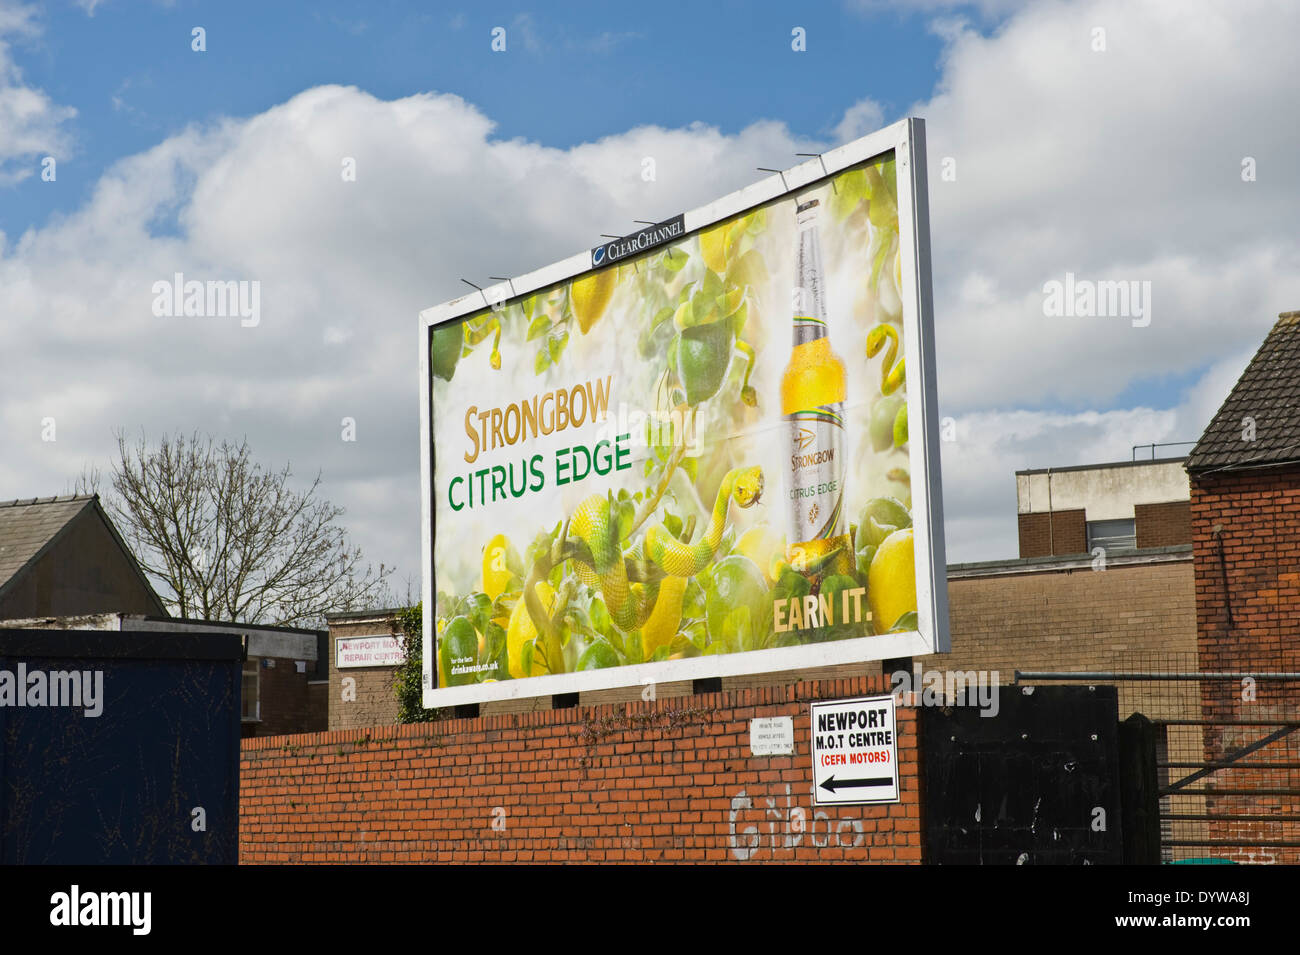 Bulmer's Strongbow Citrus Edge Cider advertising billboard on ClearChannel roadside site in Newport South Wales UK - Stock Image